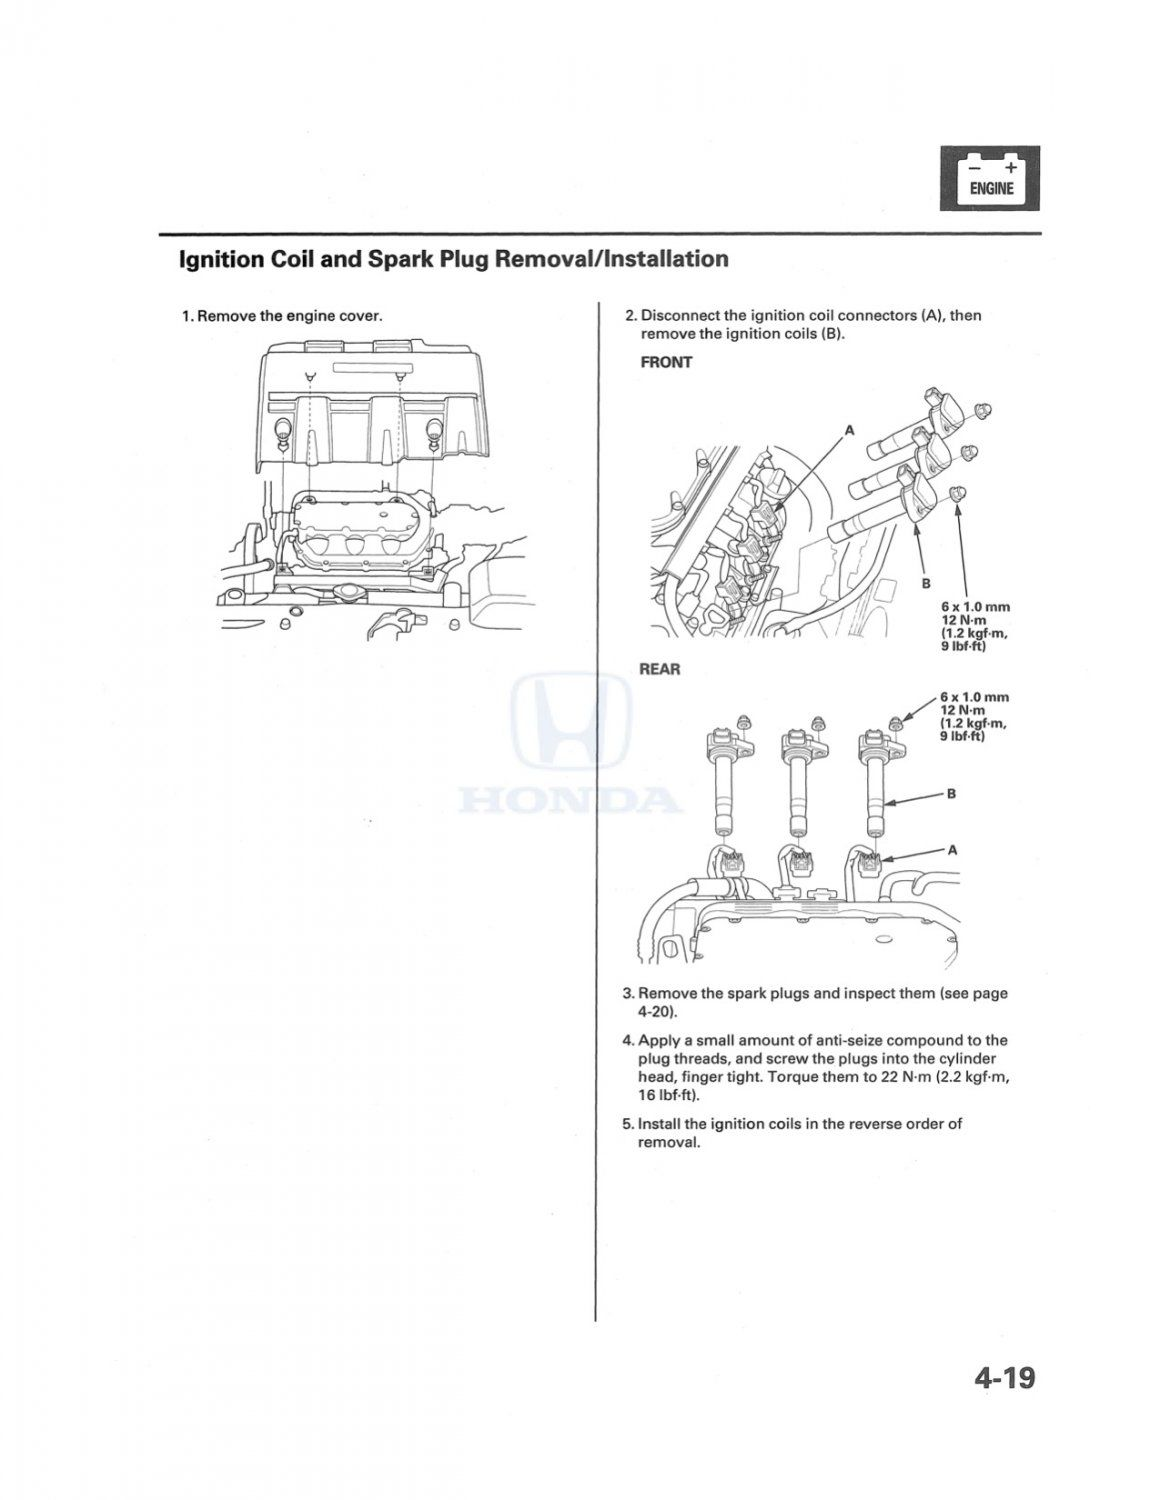 Honda_Ridgeline_2009_To_2013_Factory_Service_Repair_Manual.jpg